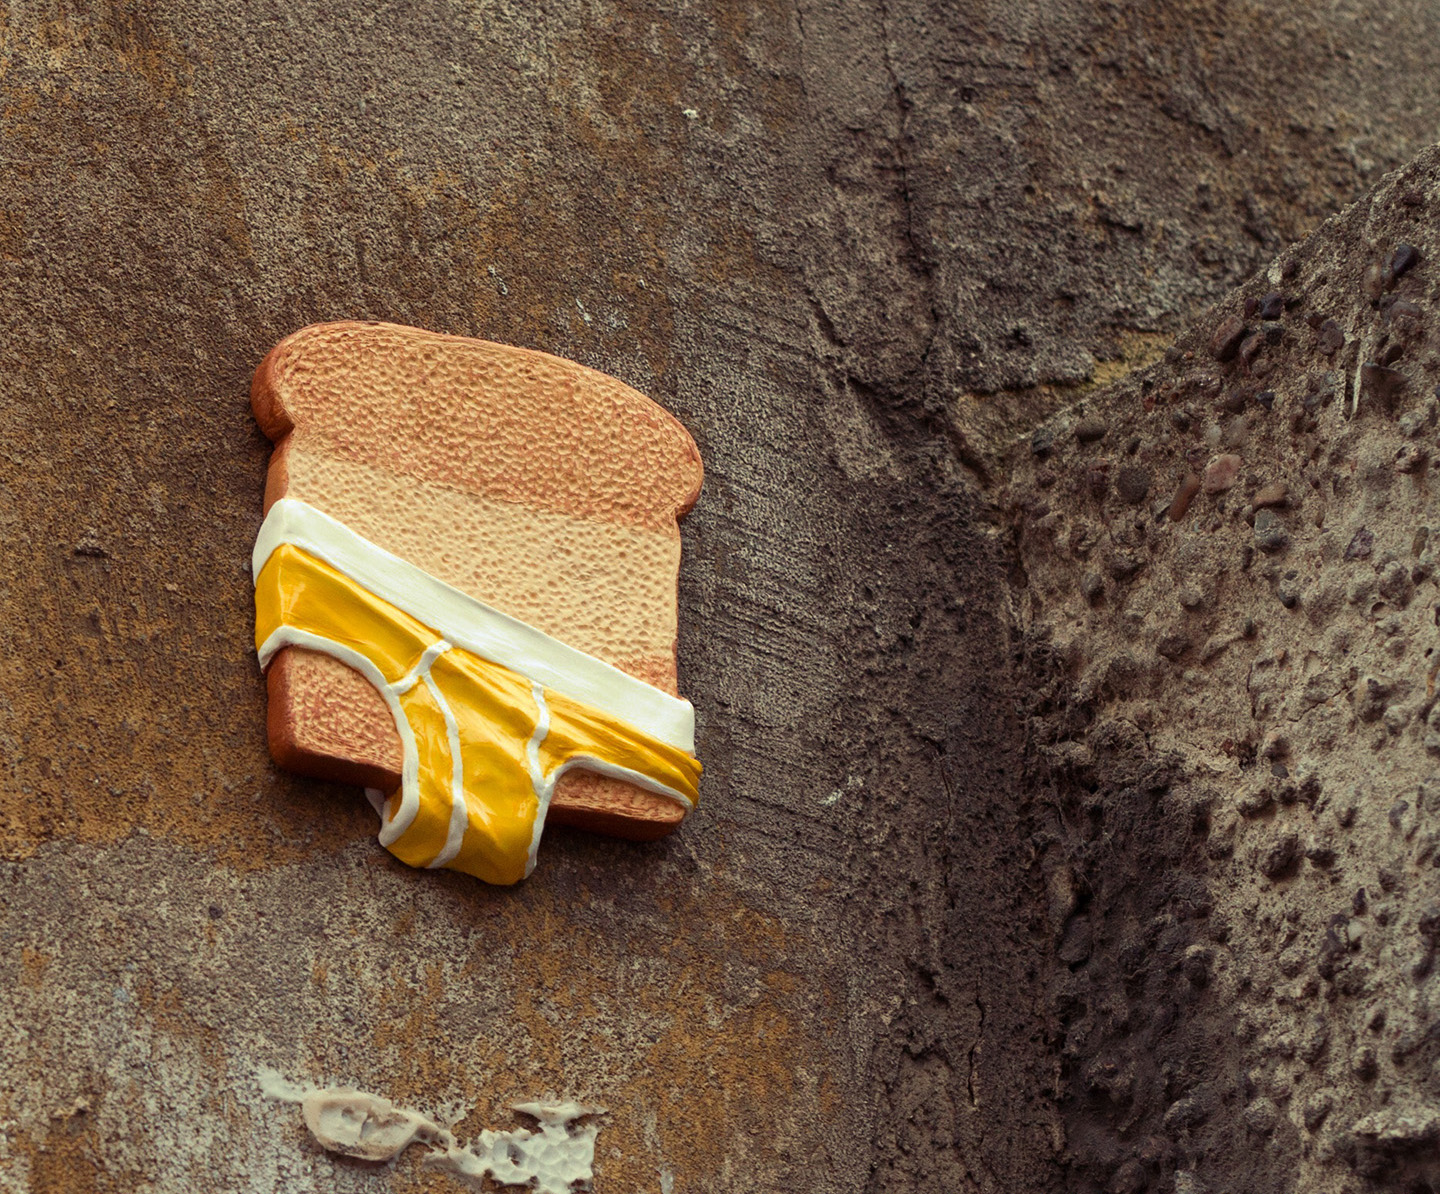 mixed_media_illustration_andre_levy_zhion_toast_croque_copain_street_art_urban_sculpture_4.jpg